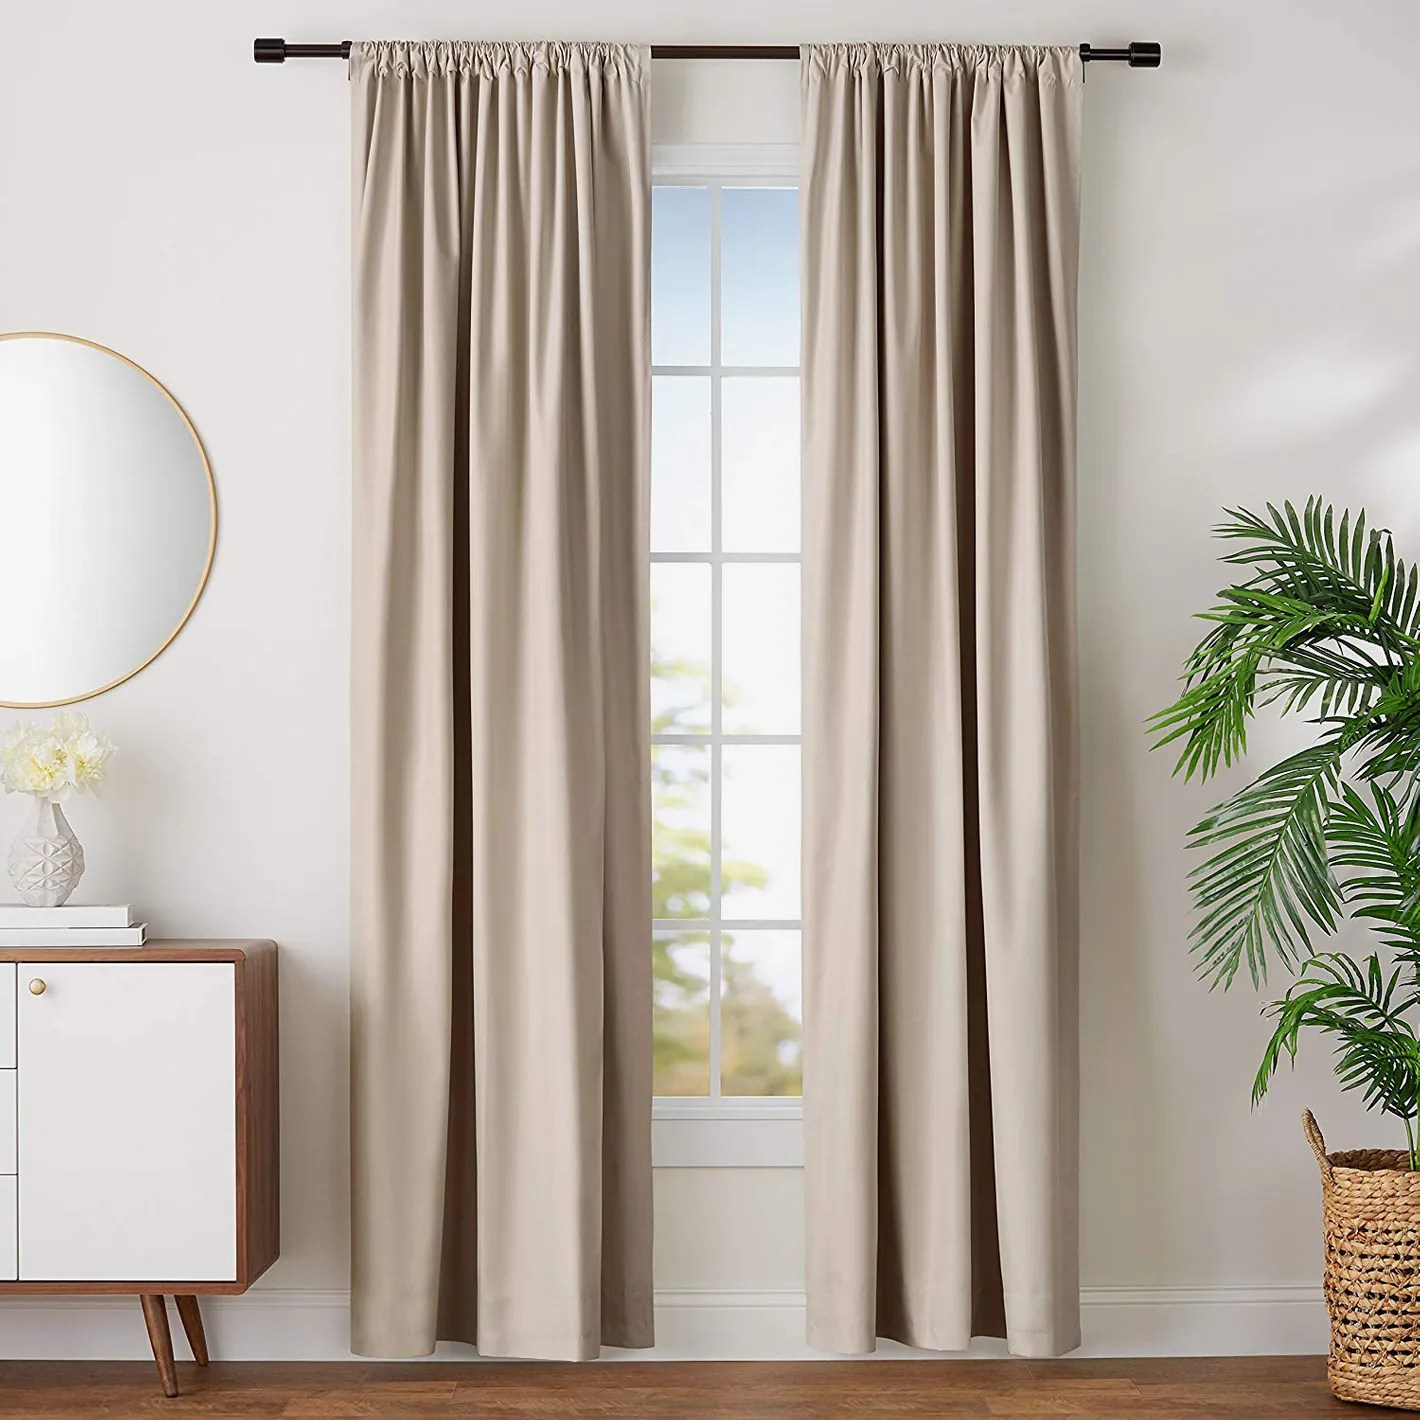 How To Make Lined Curtain Panels 8 Best Room Darkening Curtains 2018